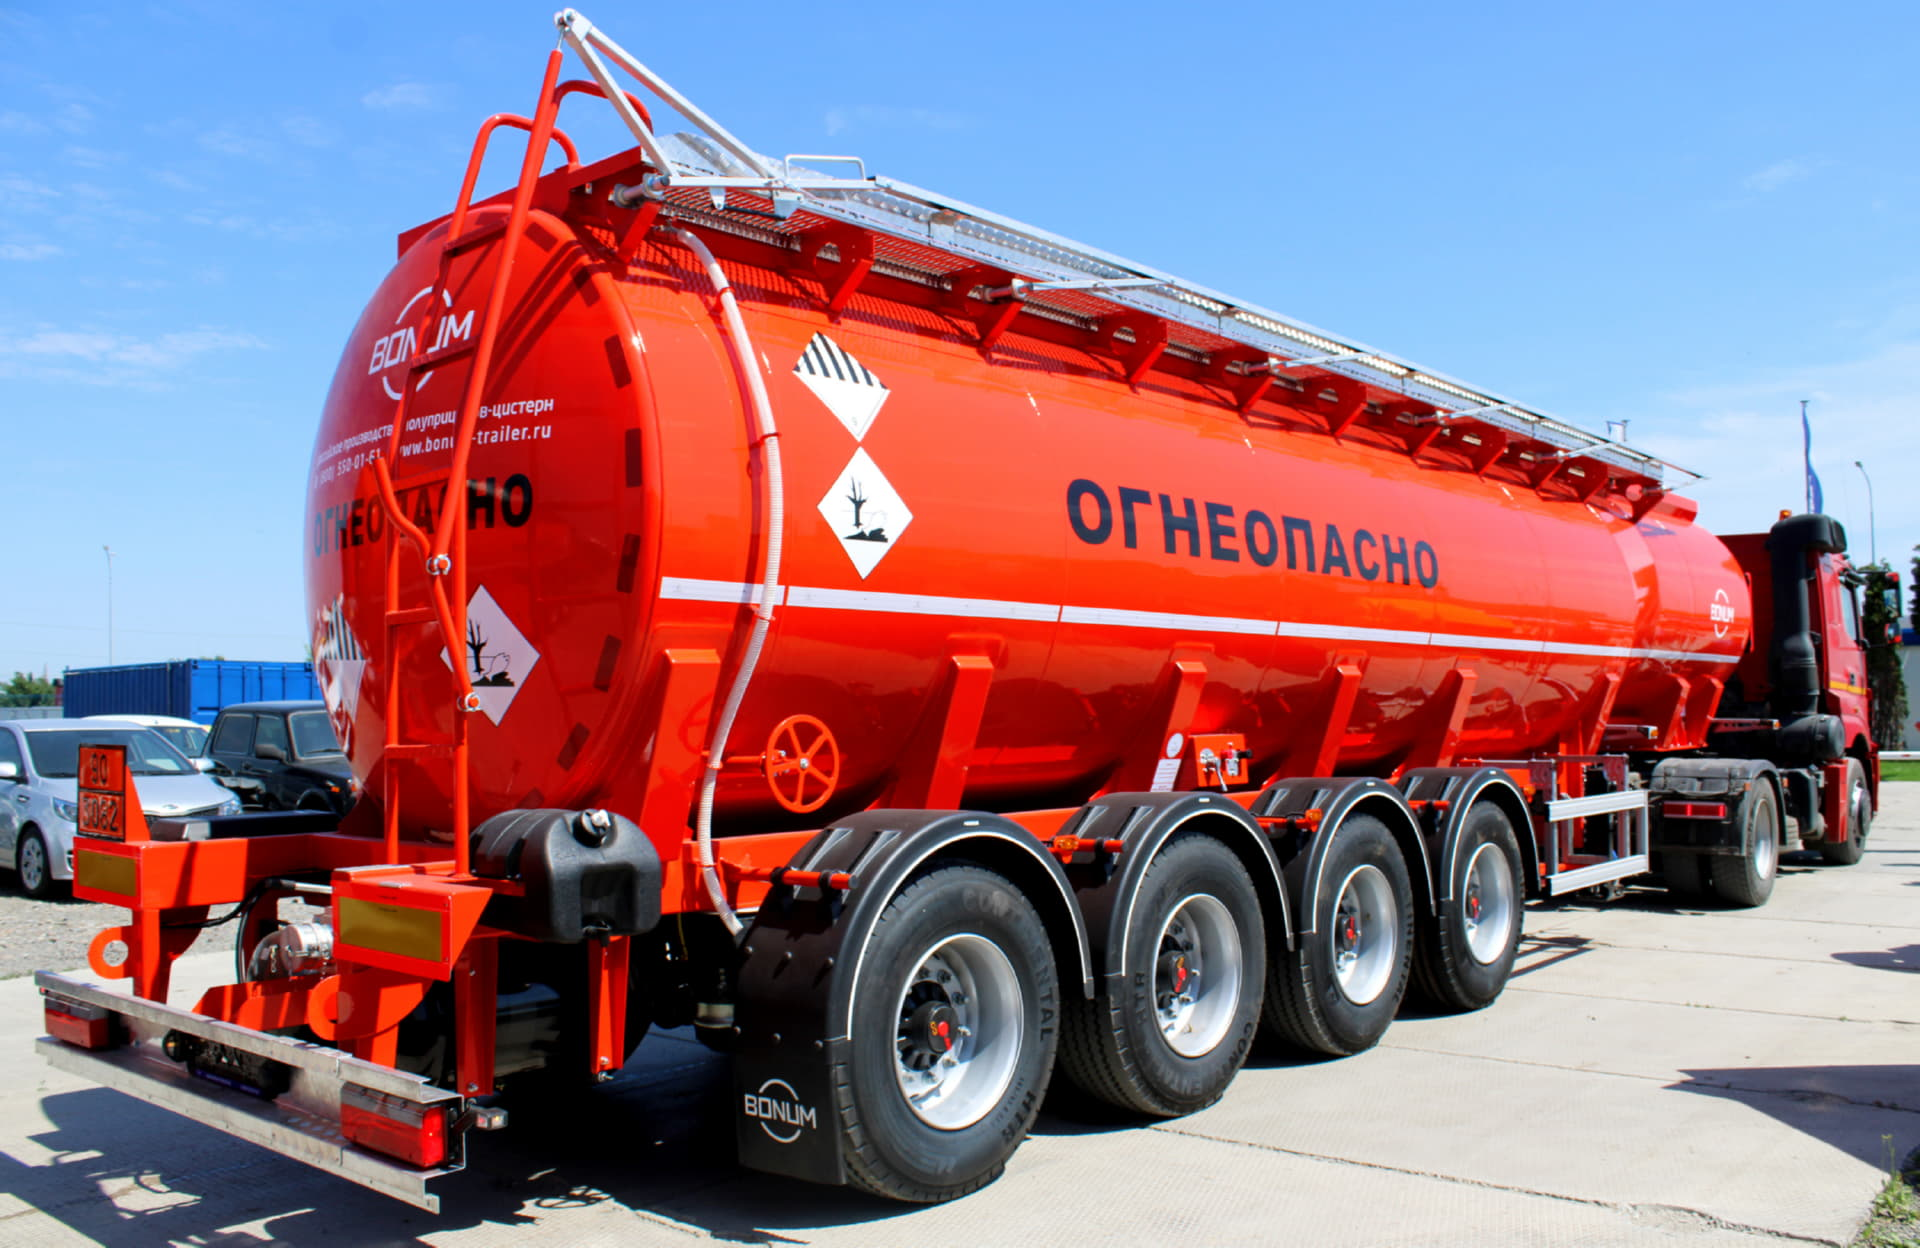 BONUM oil tanker 914221 (4 axles)